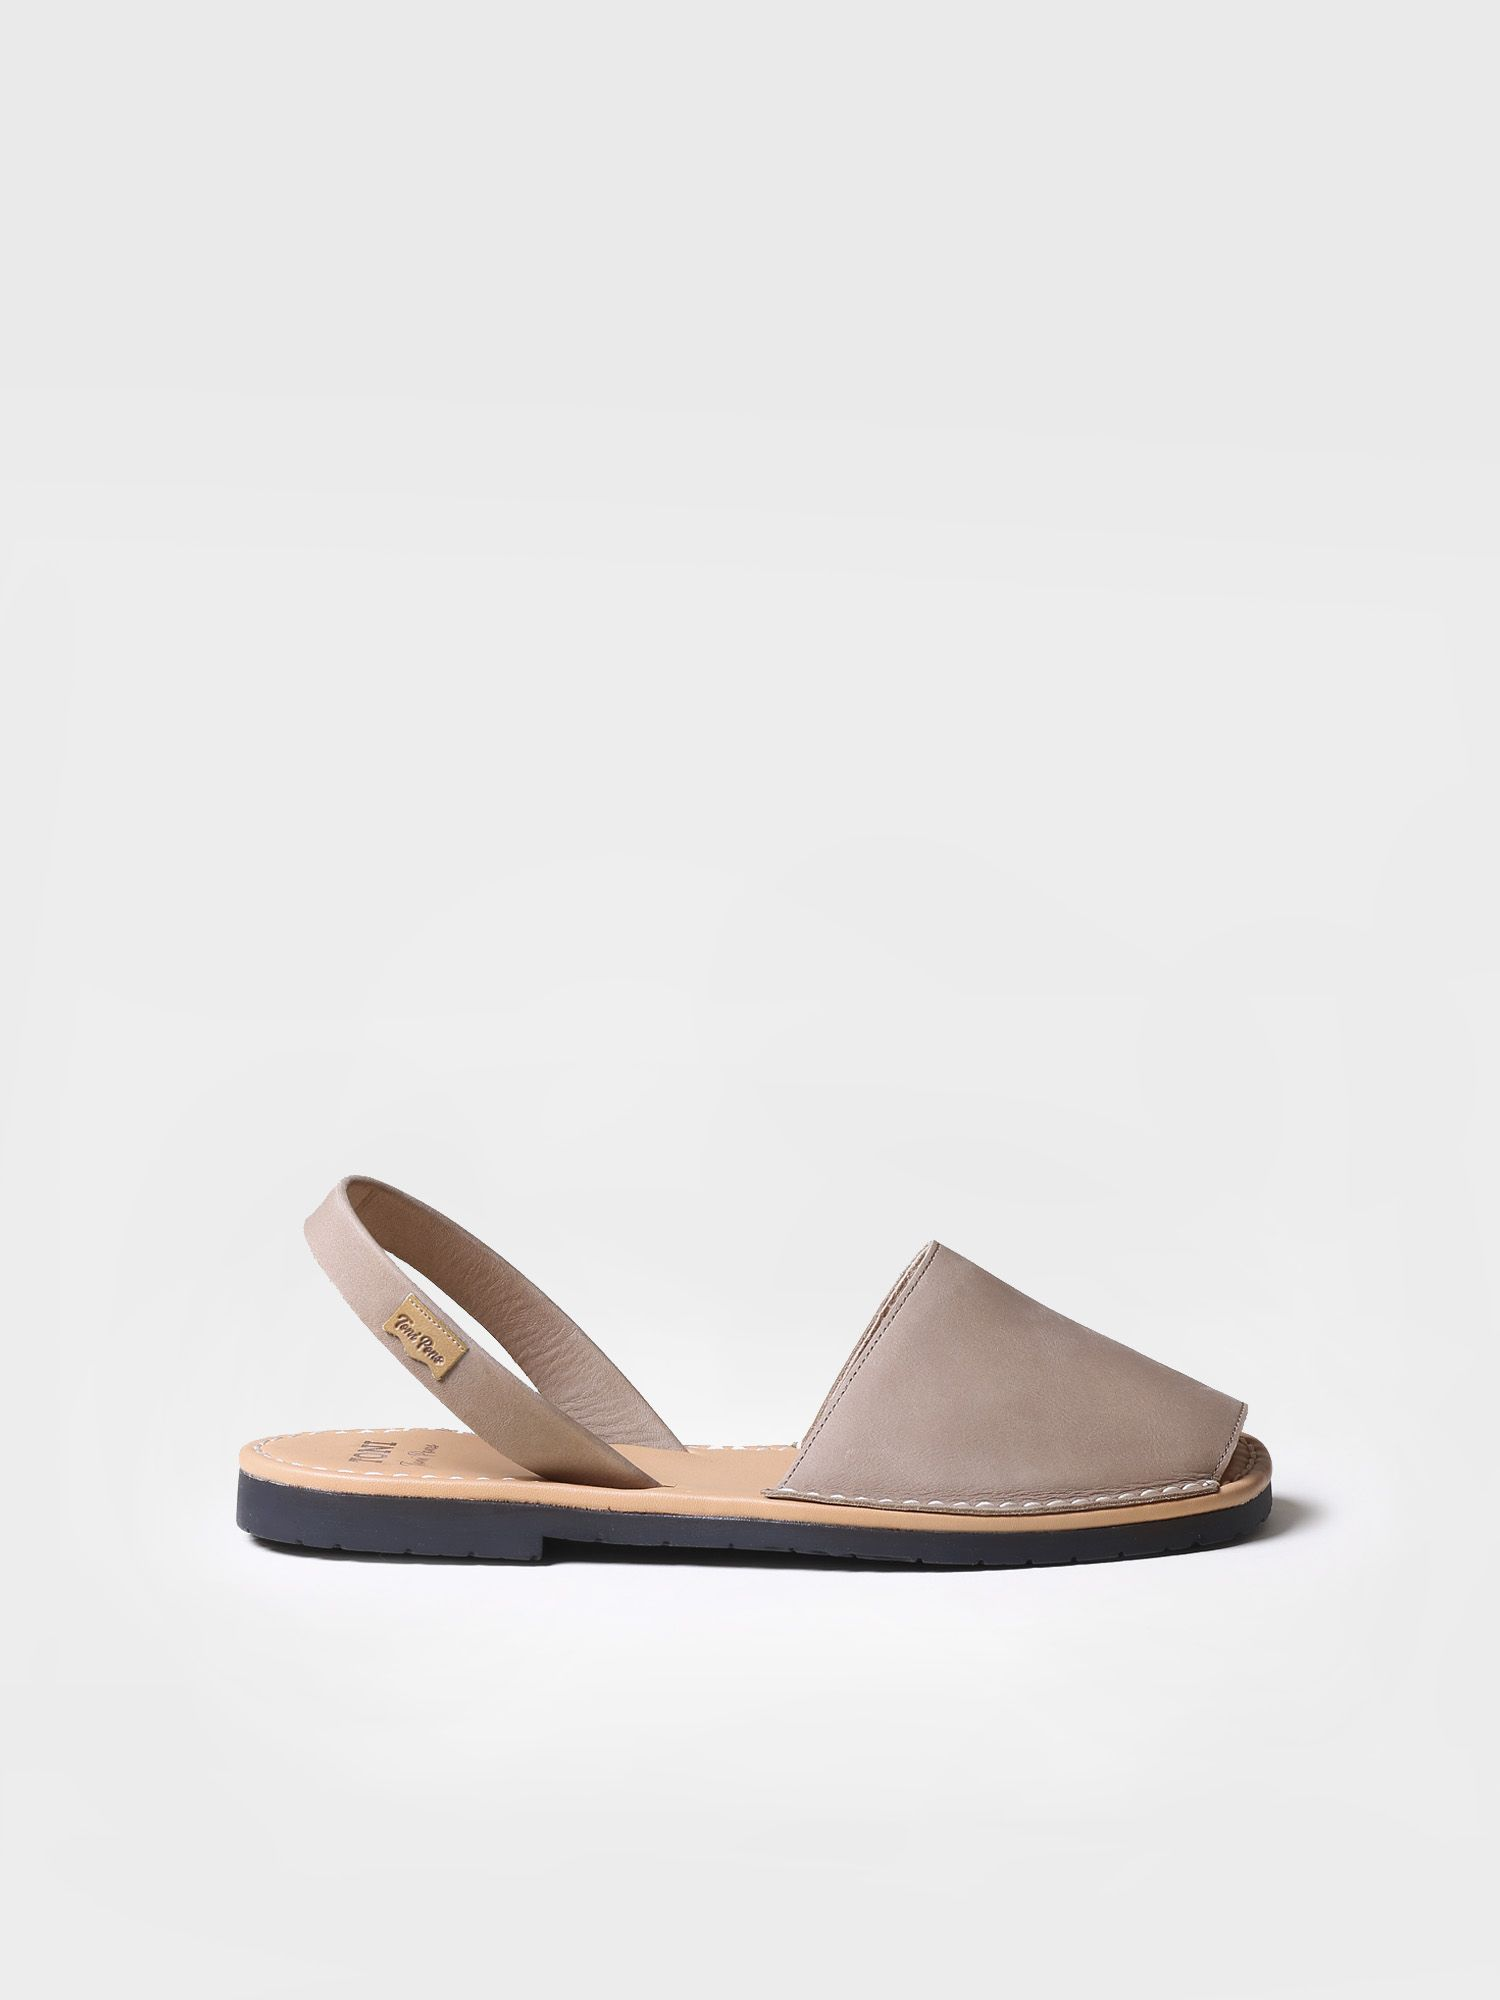 Avarca sandals leather - GRAU-P